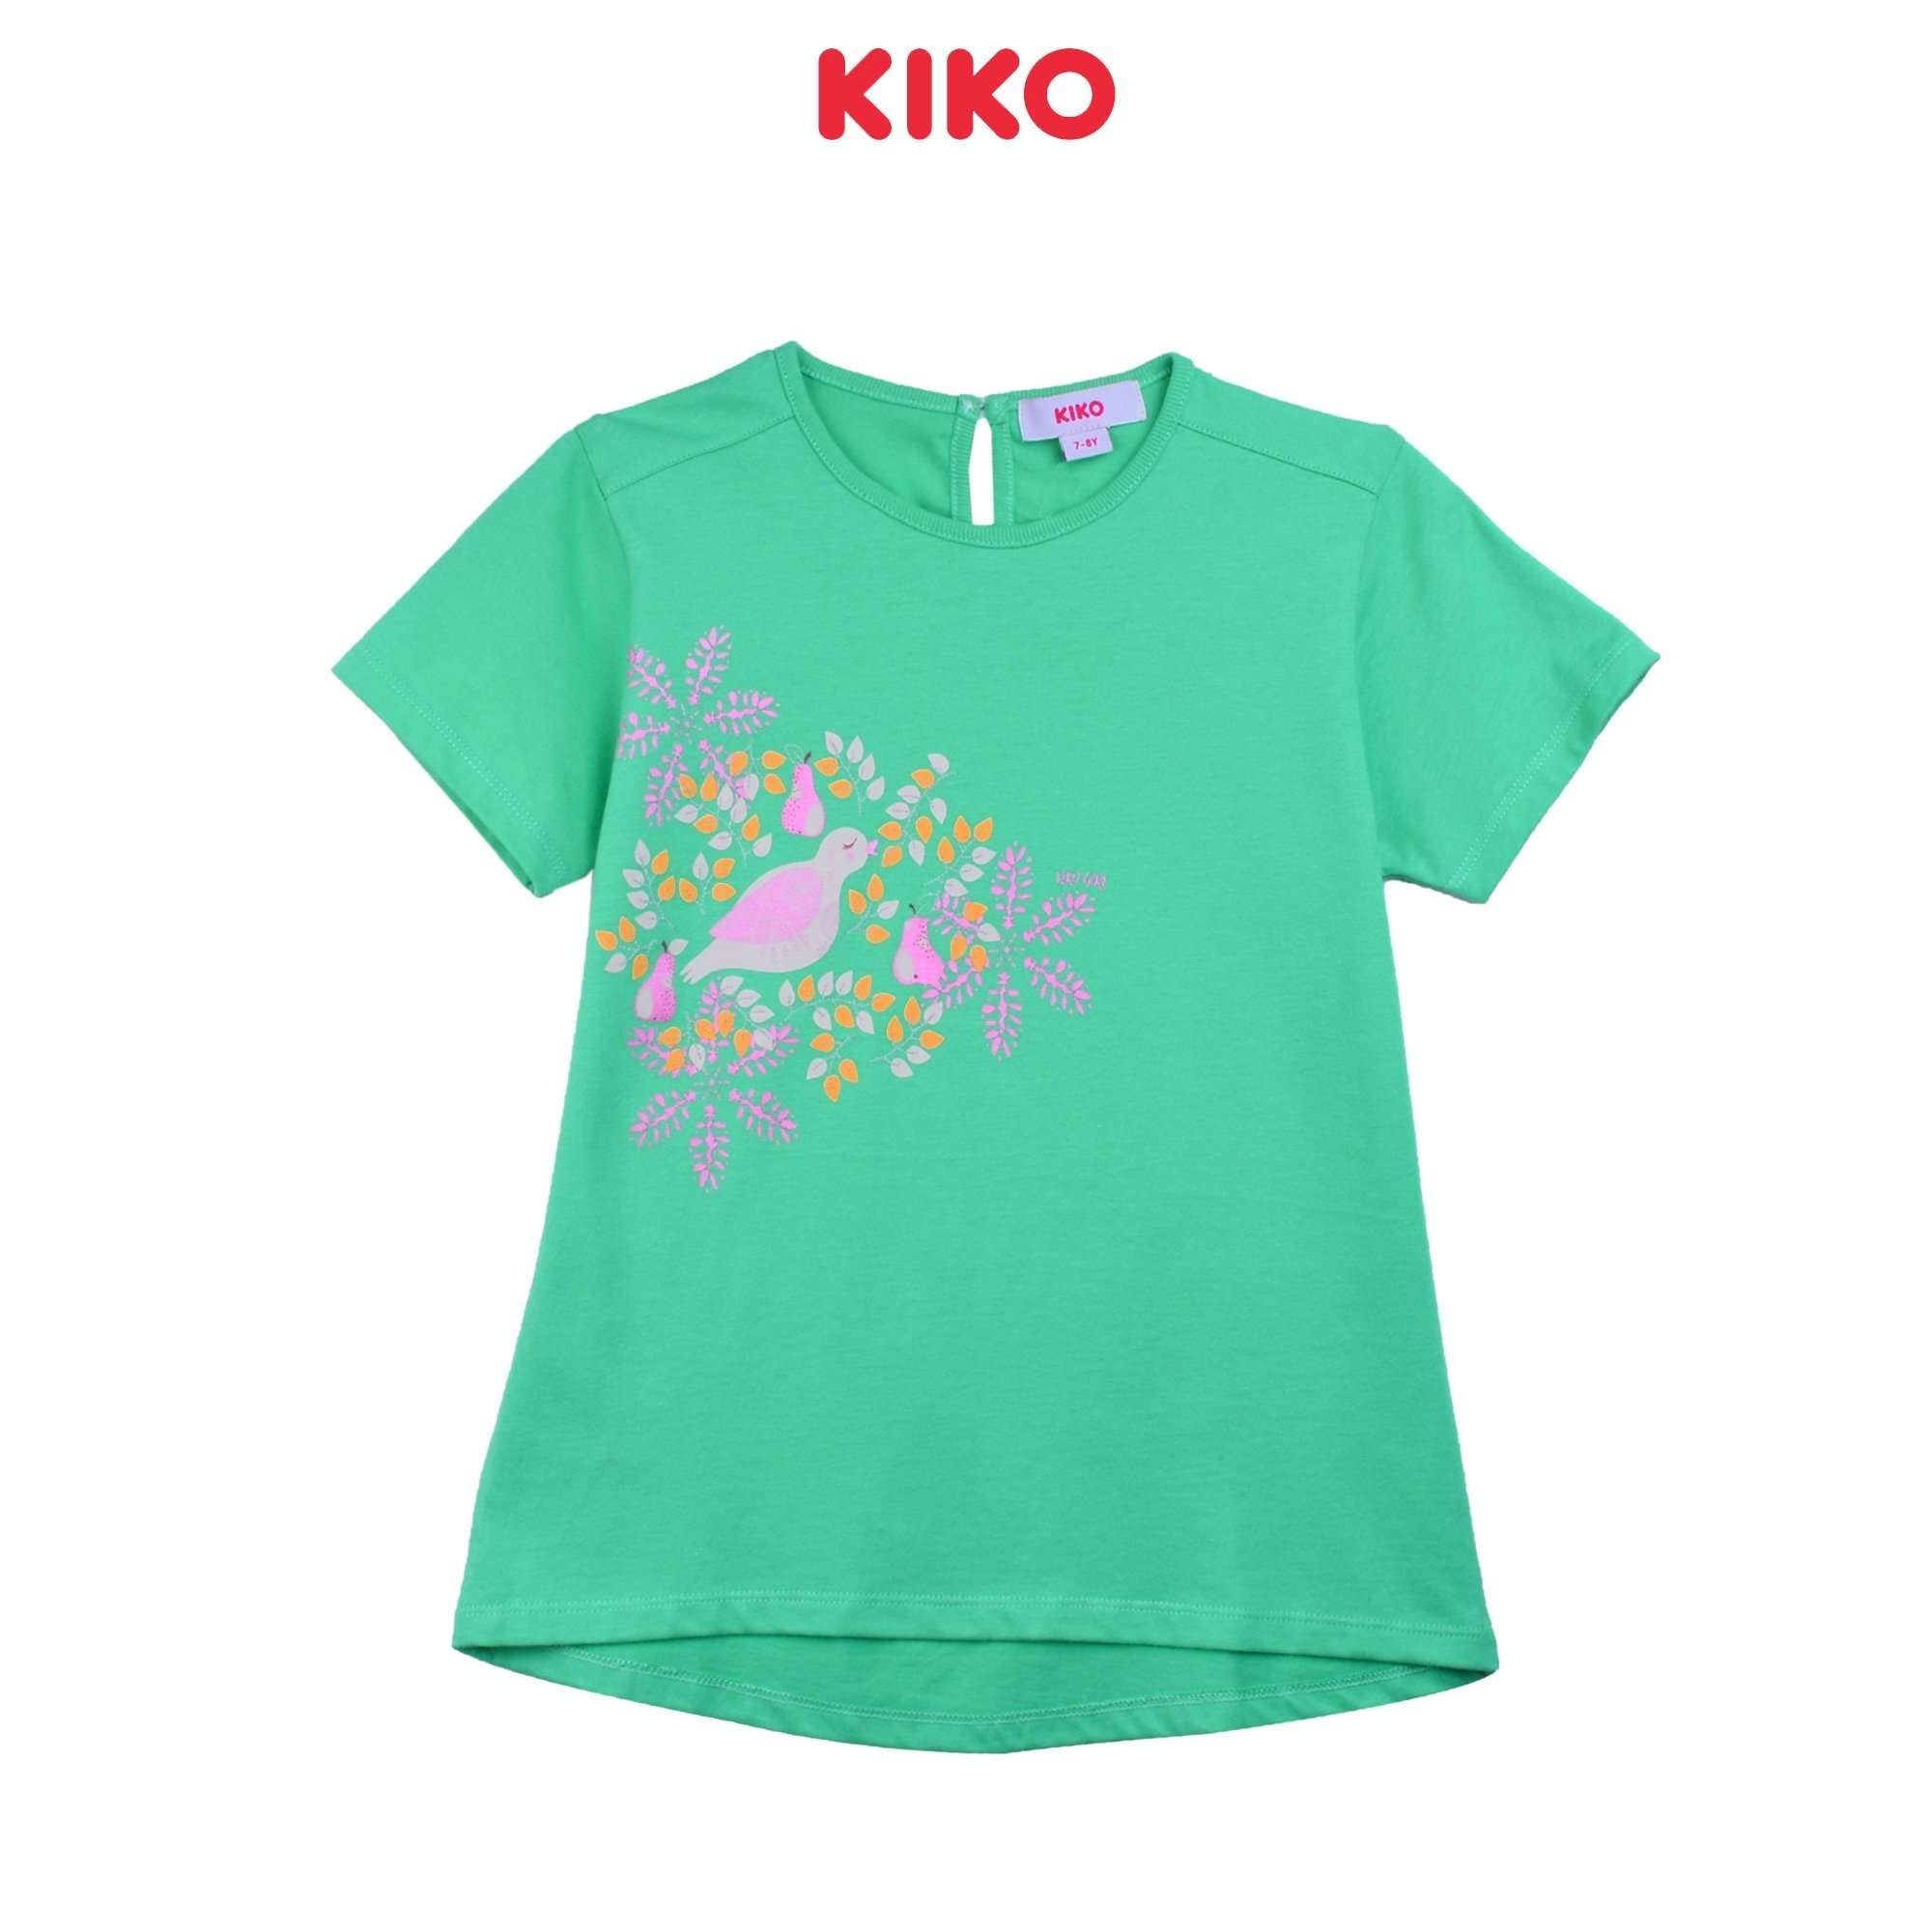 KIKO Girl Short Sleeve Tee K925001-1103-N5 : Buy KIKO online at CMG.MY